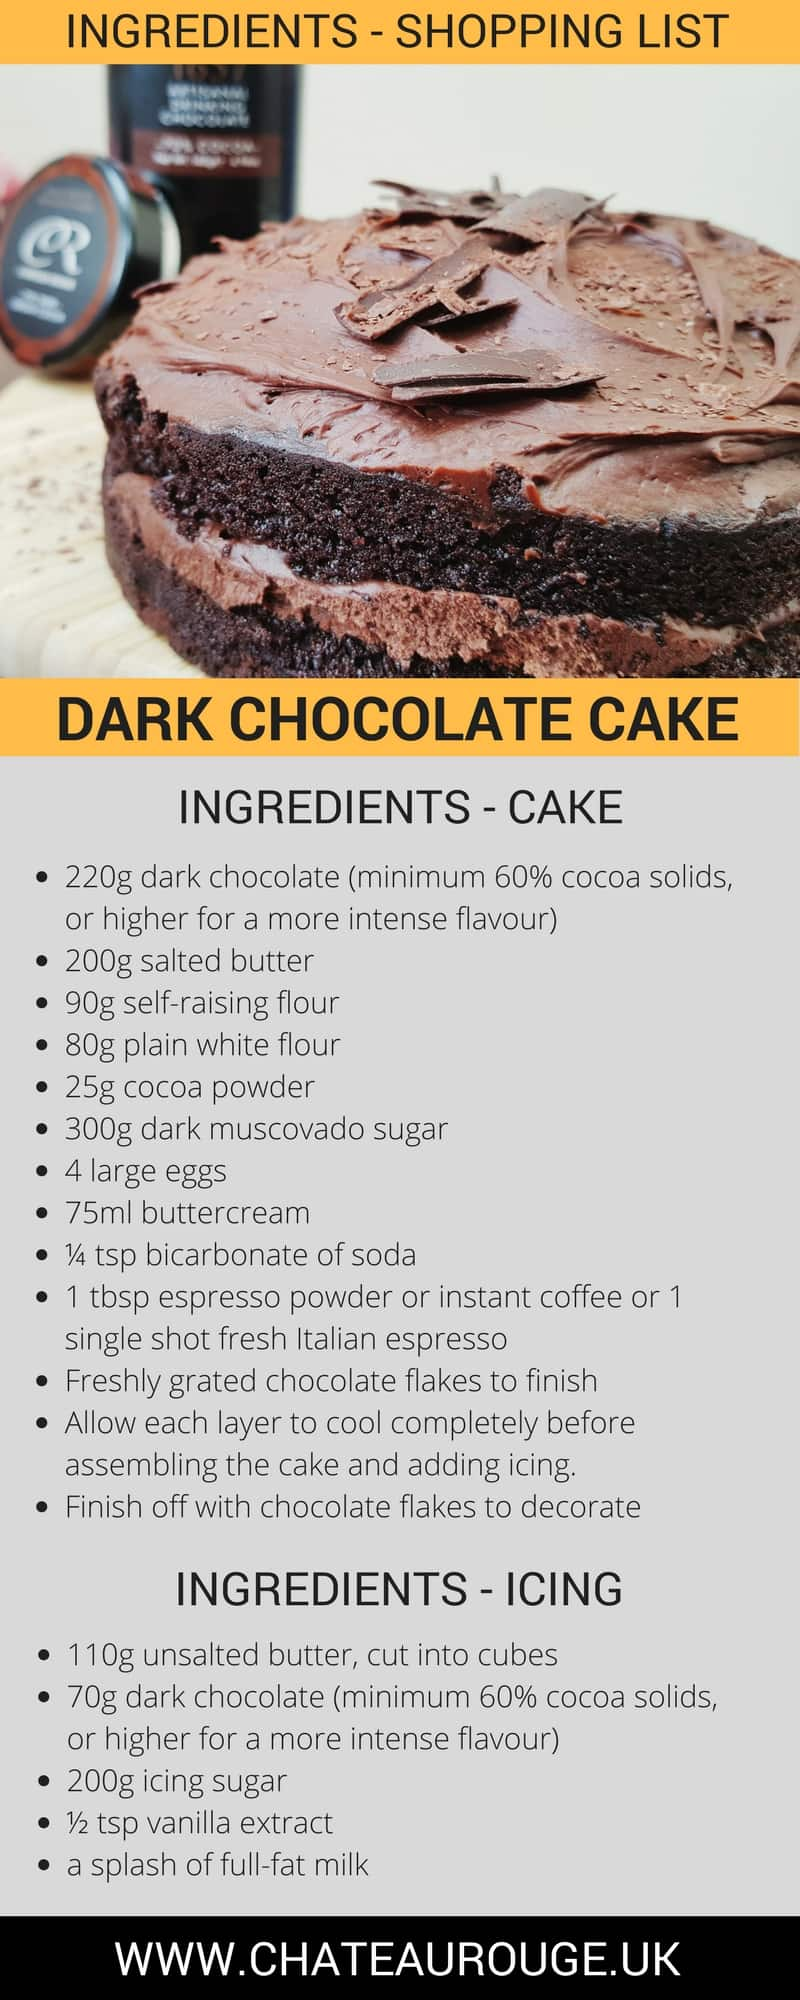 Chateau Rouge Fine Foods UK_Dark chocolate cake recipe ingredients checklist